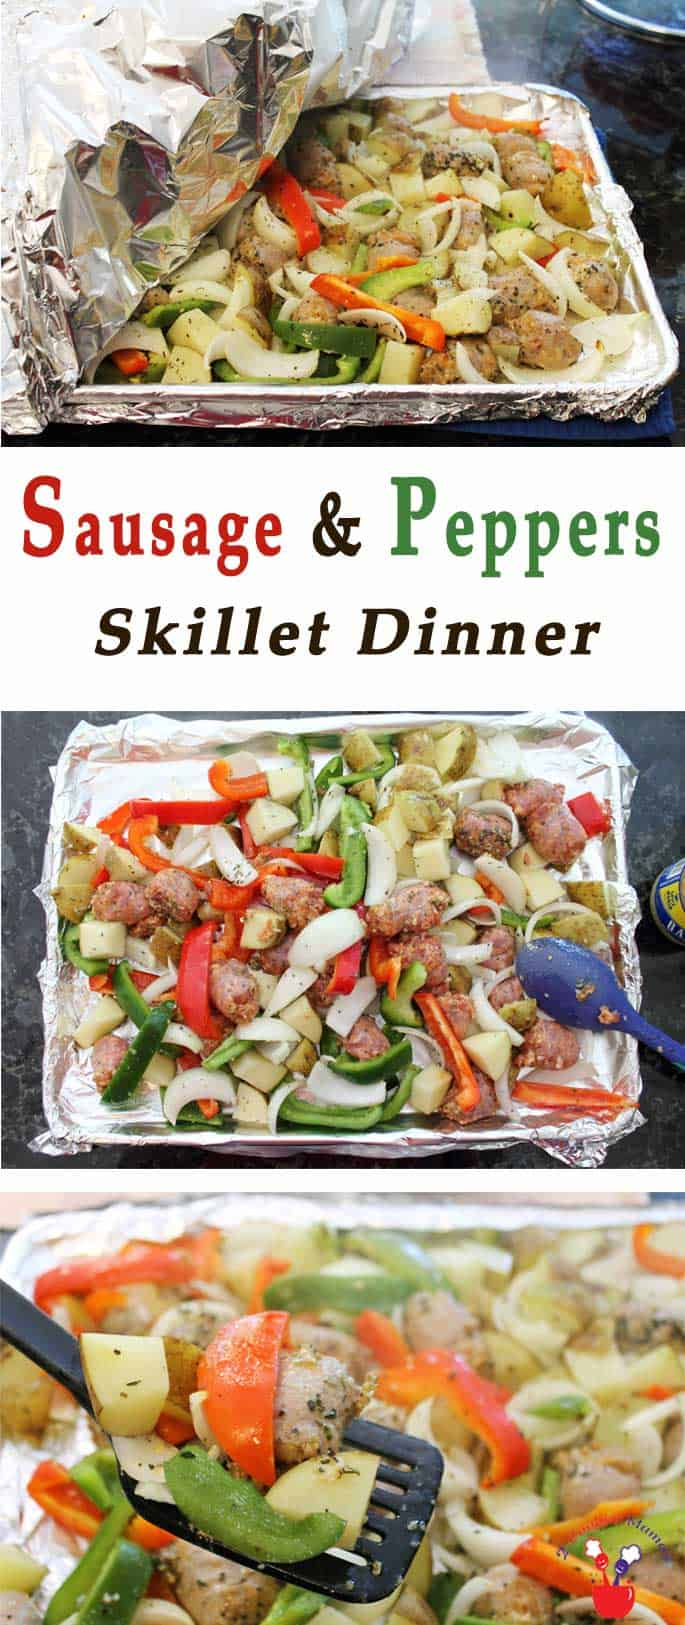 Our Sausage & Peppers Sheet Pan dinner is a great alternative to grilling. It's delicious, super easy & cleanup is a breeze. #sheetpandinner #sausageandpeppers #dinner #quickandeasy #recipe